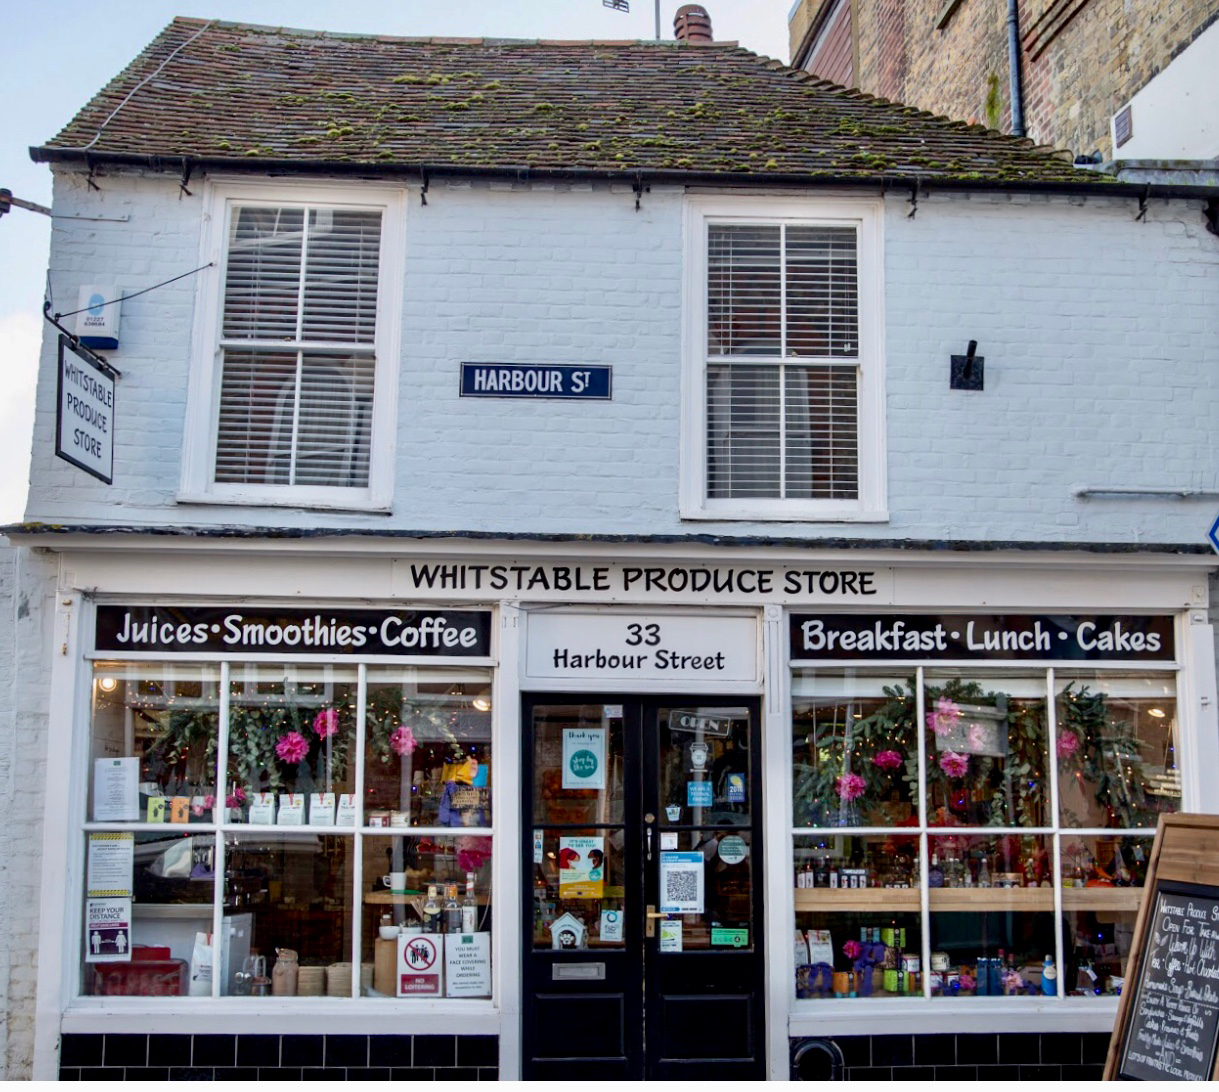 Whitstable Produce Store Shop